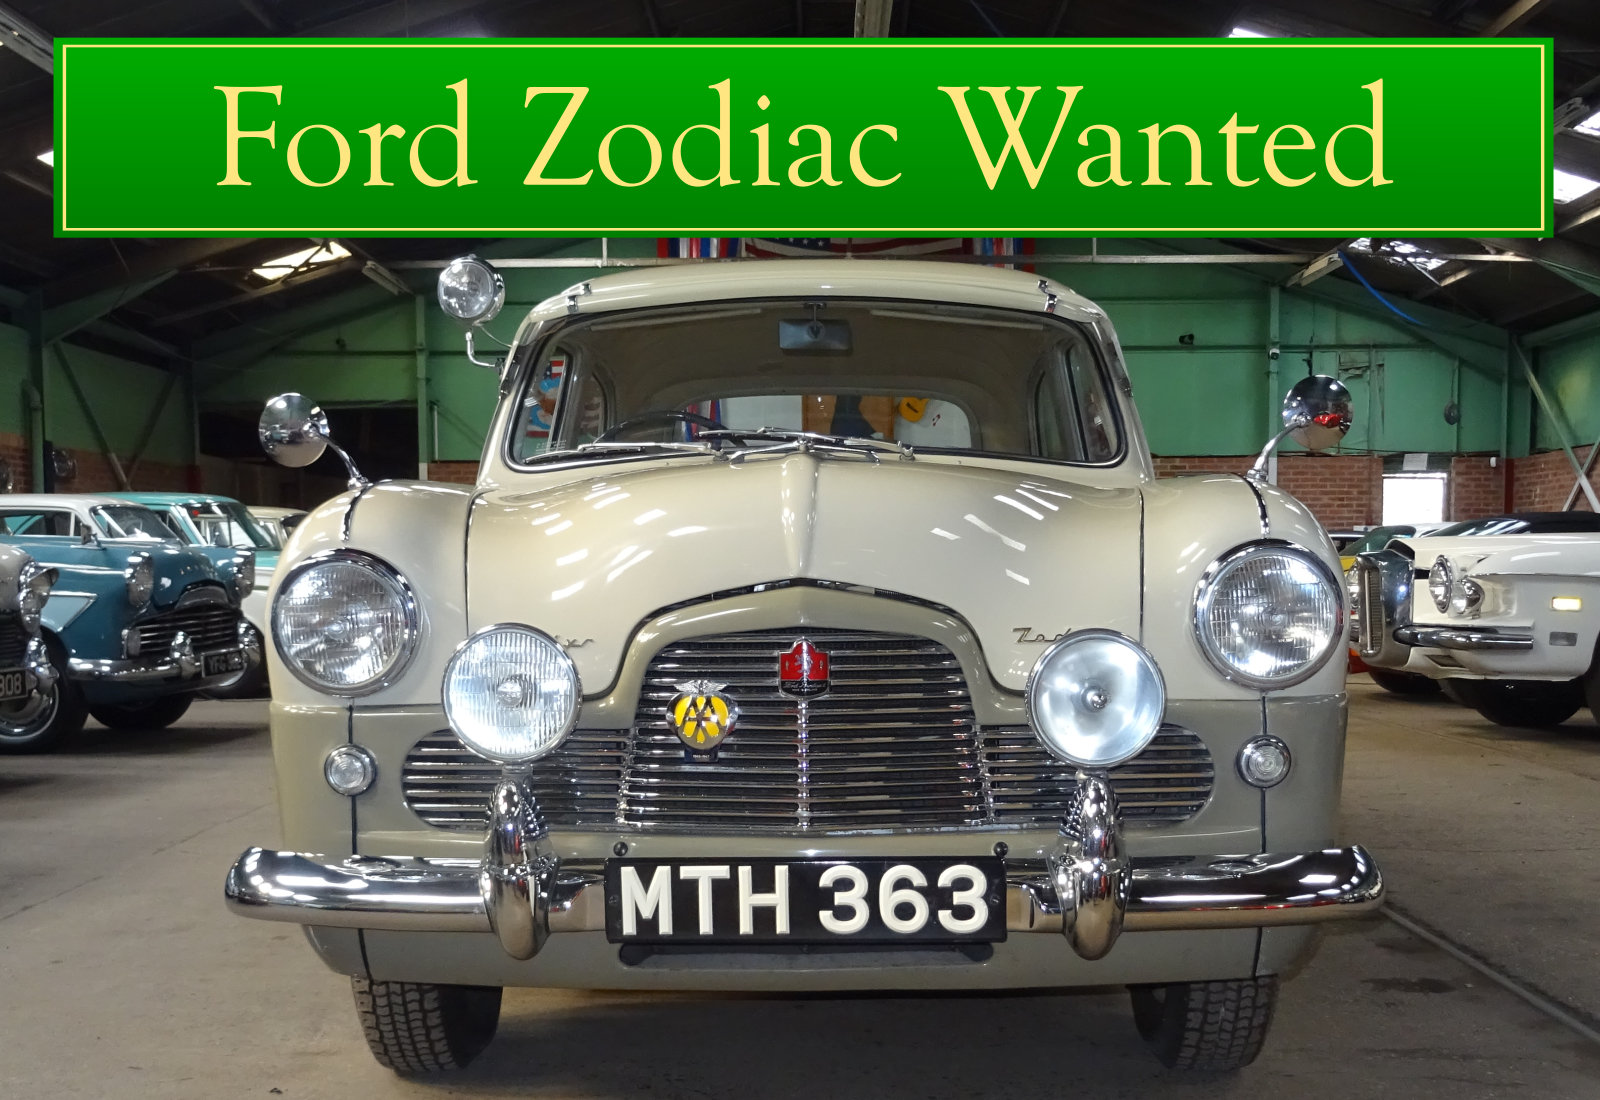 FORD ZODIAC MK2 WANTED, CLASSIC CARS WANTED, INSTANT PAYMENT Wanted (picture 3 of 6)